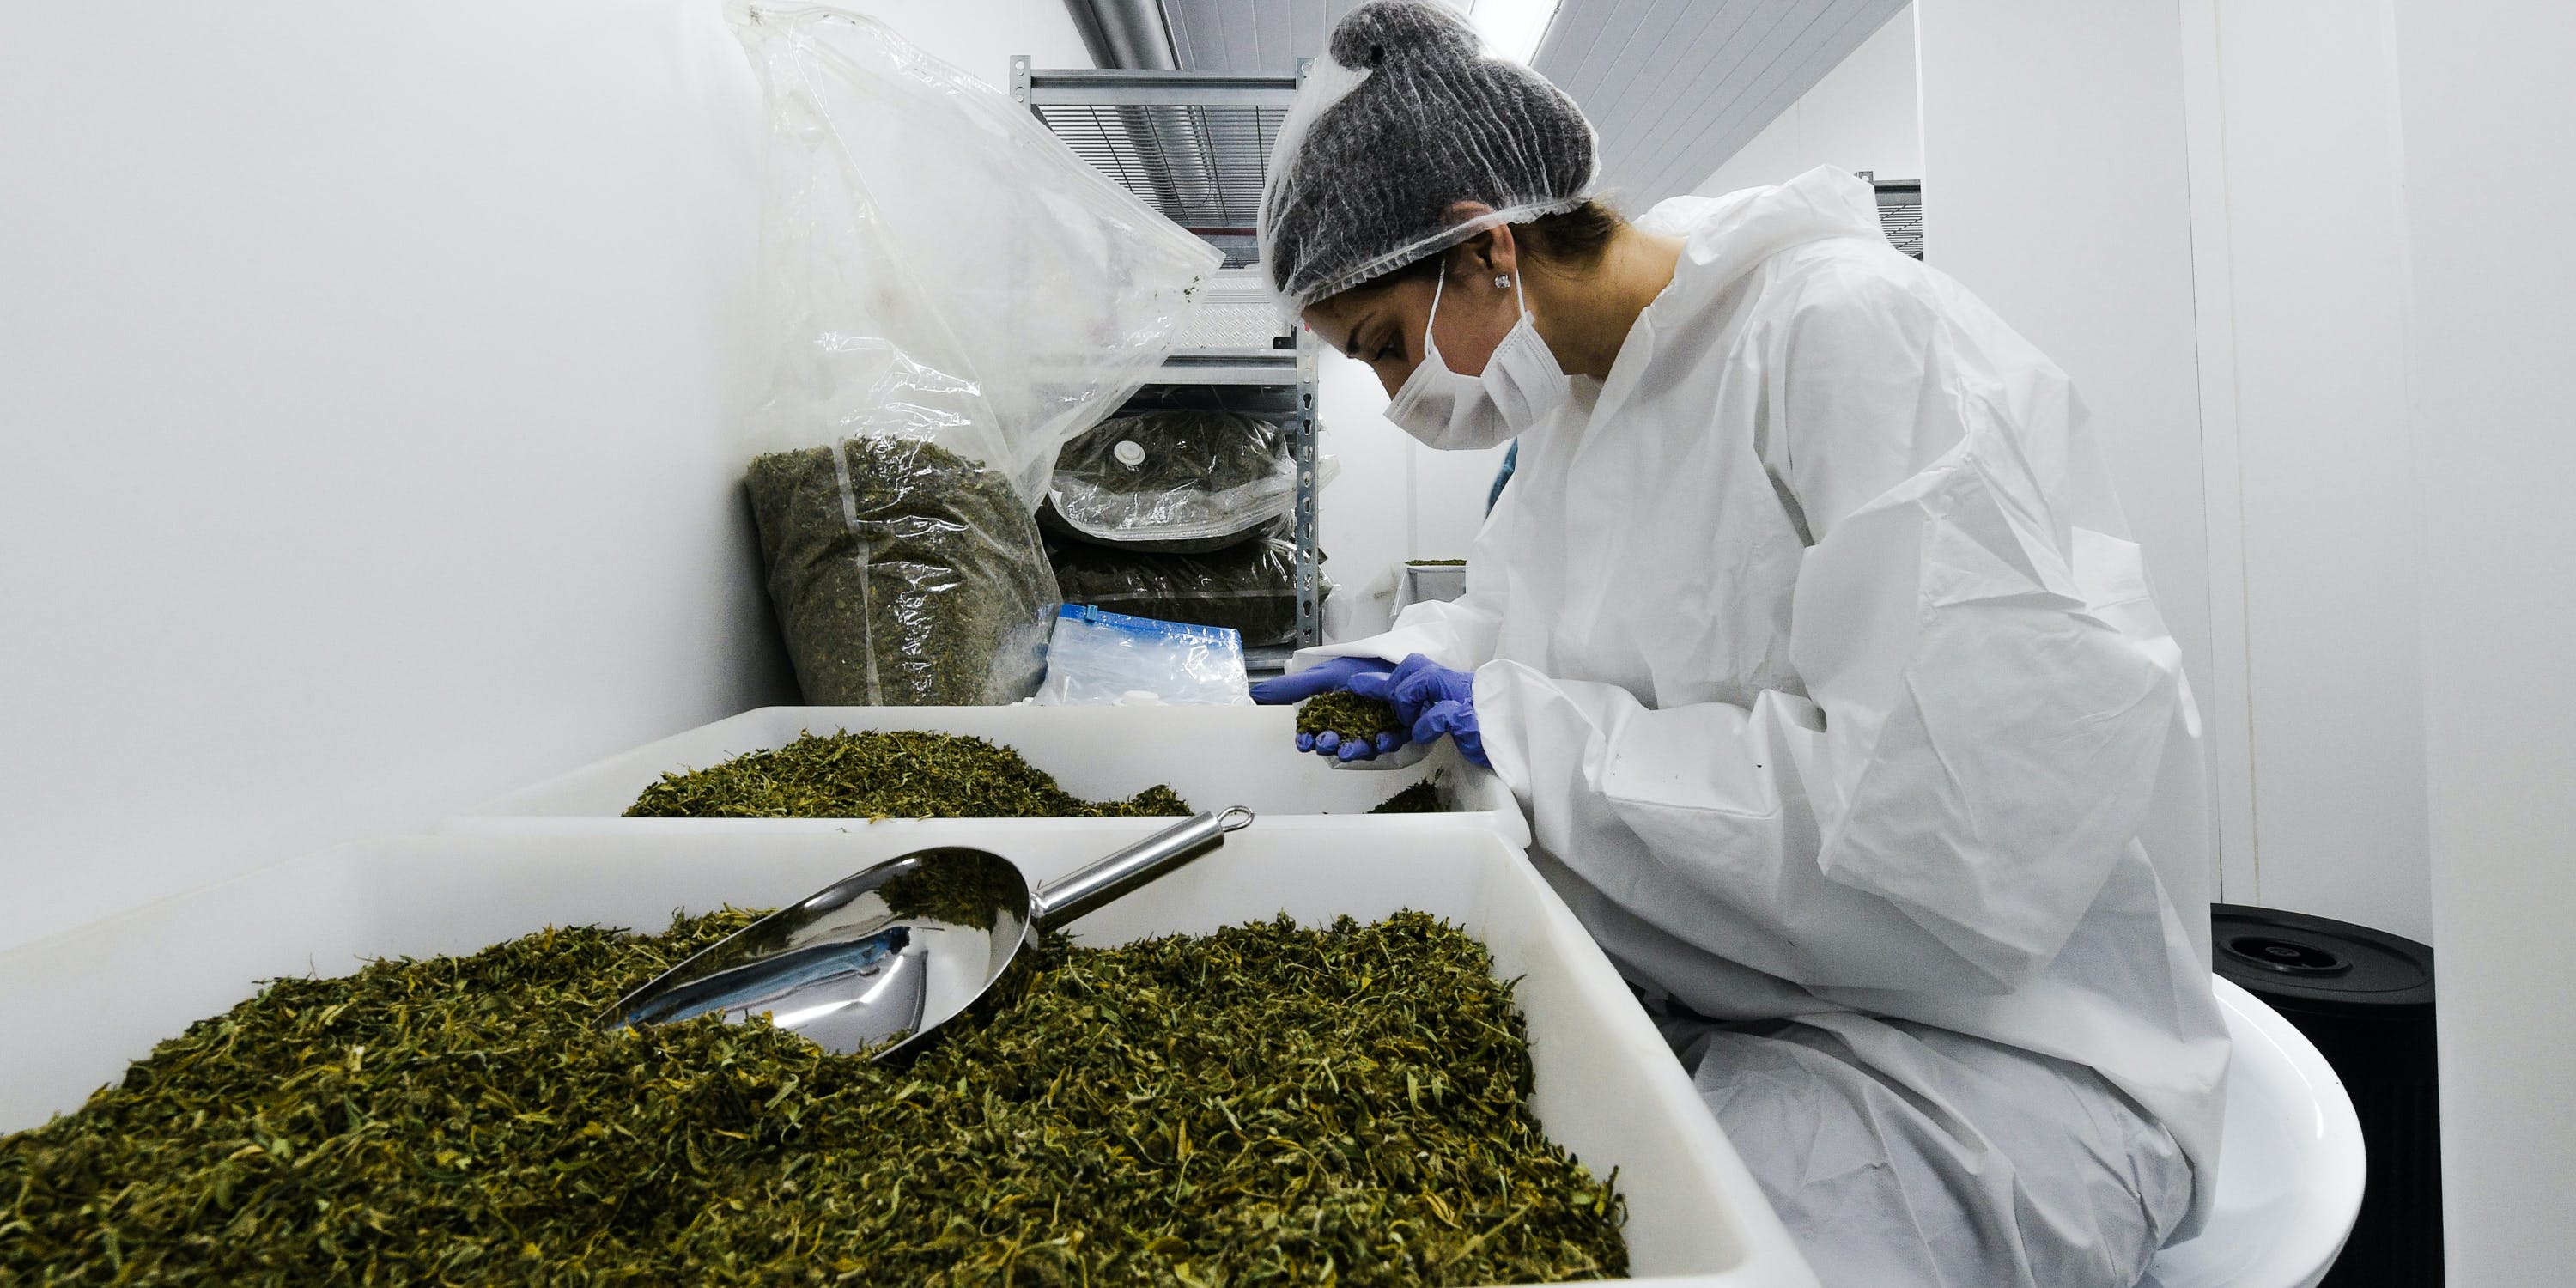 An employee analyzes the quality of marijuana at a greenhouse near Empalme Olmos, Canelones department, Uruguay on August 23, 2018. One of the most common marijuana myths is that prohibition should be upheld because cannabis hasn't been proven to be safe. On the contrary, legalization ensures that it is by instituting regulations like lab testing. (Photo by Miguel ROJO/ AFP/Getty Images)